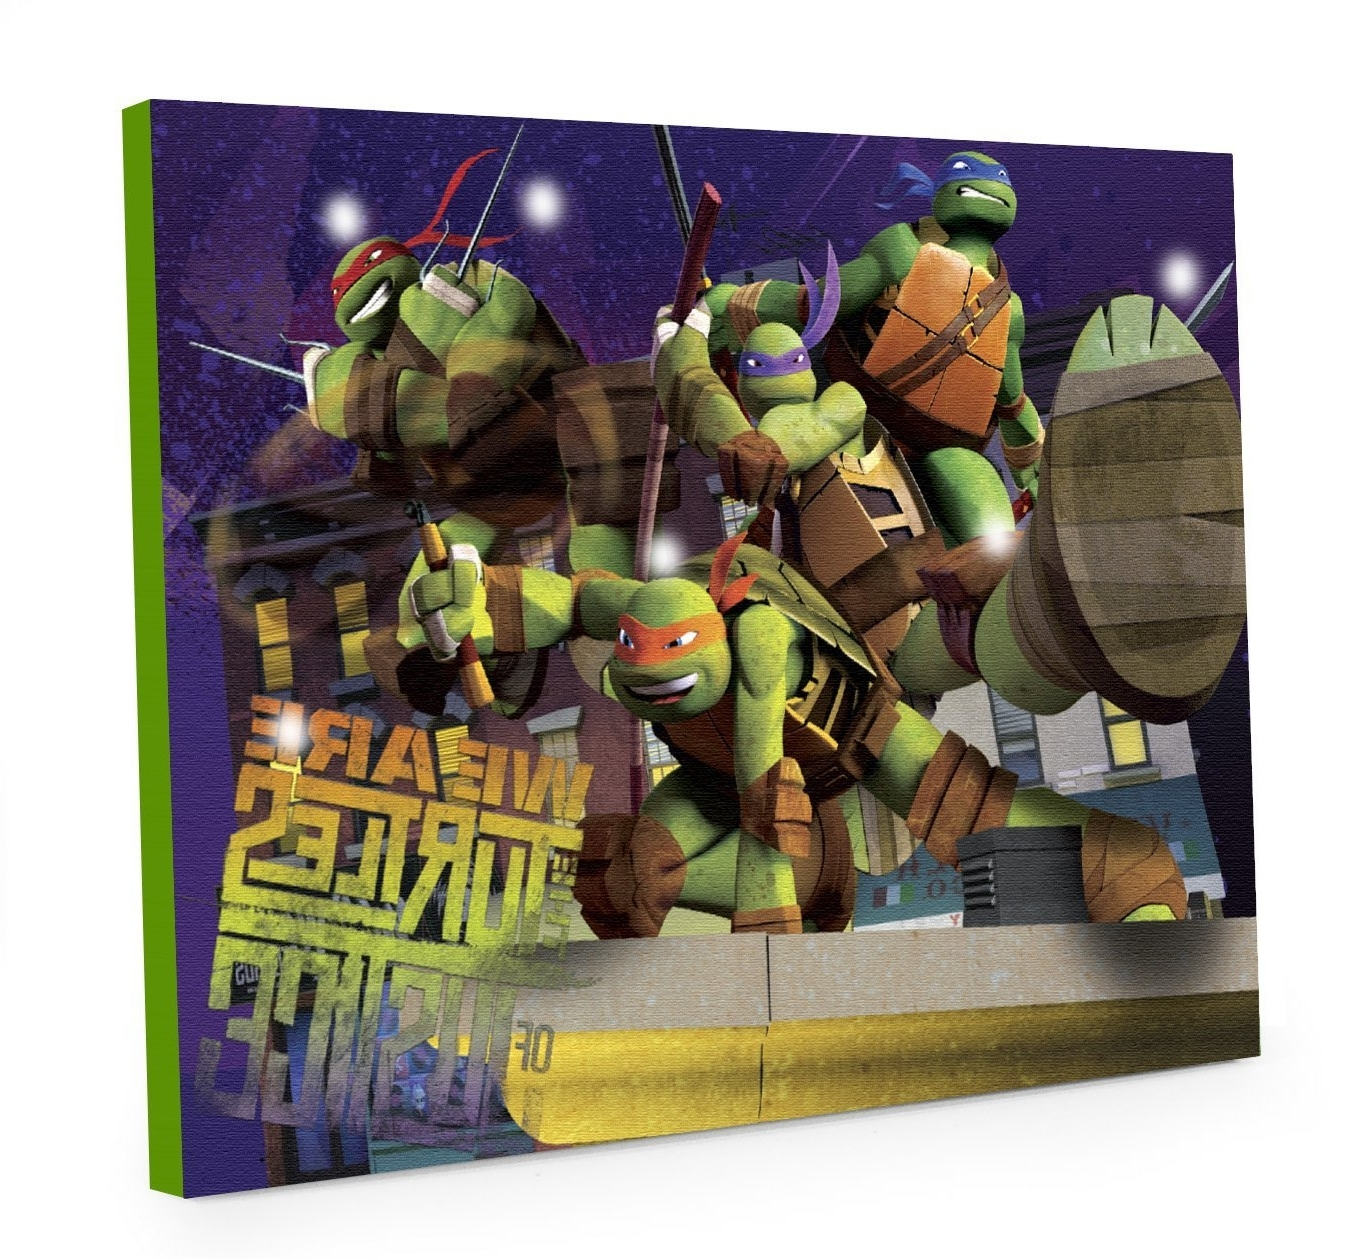 Best And Newest Amazon: Nickelodeon Teenage Mutant Ninja Turtles Led Canvas Inside Tmnt Wall Art (View 6 of 15)